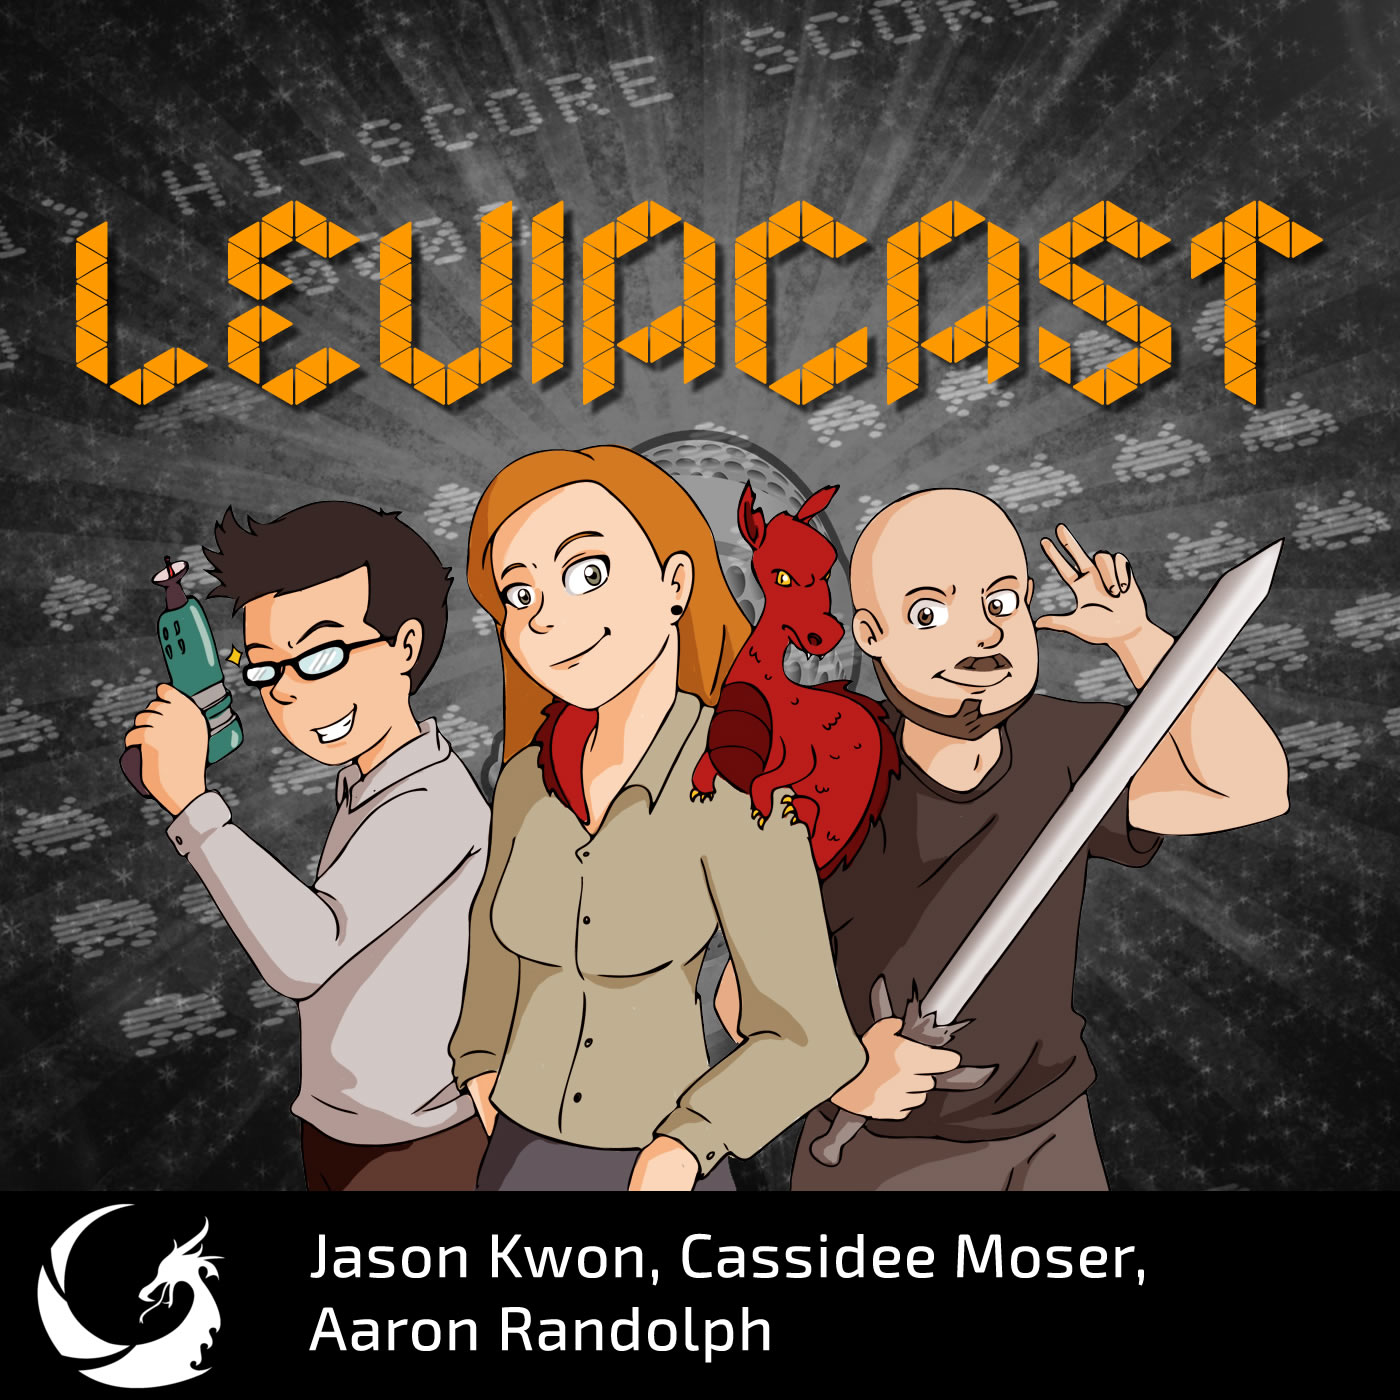 Leviacast Ep. 105: Chroma Squad, Horror Games, and Anime